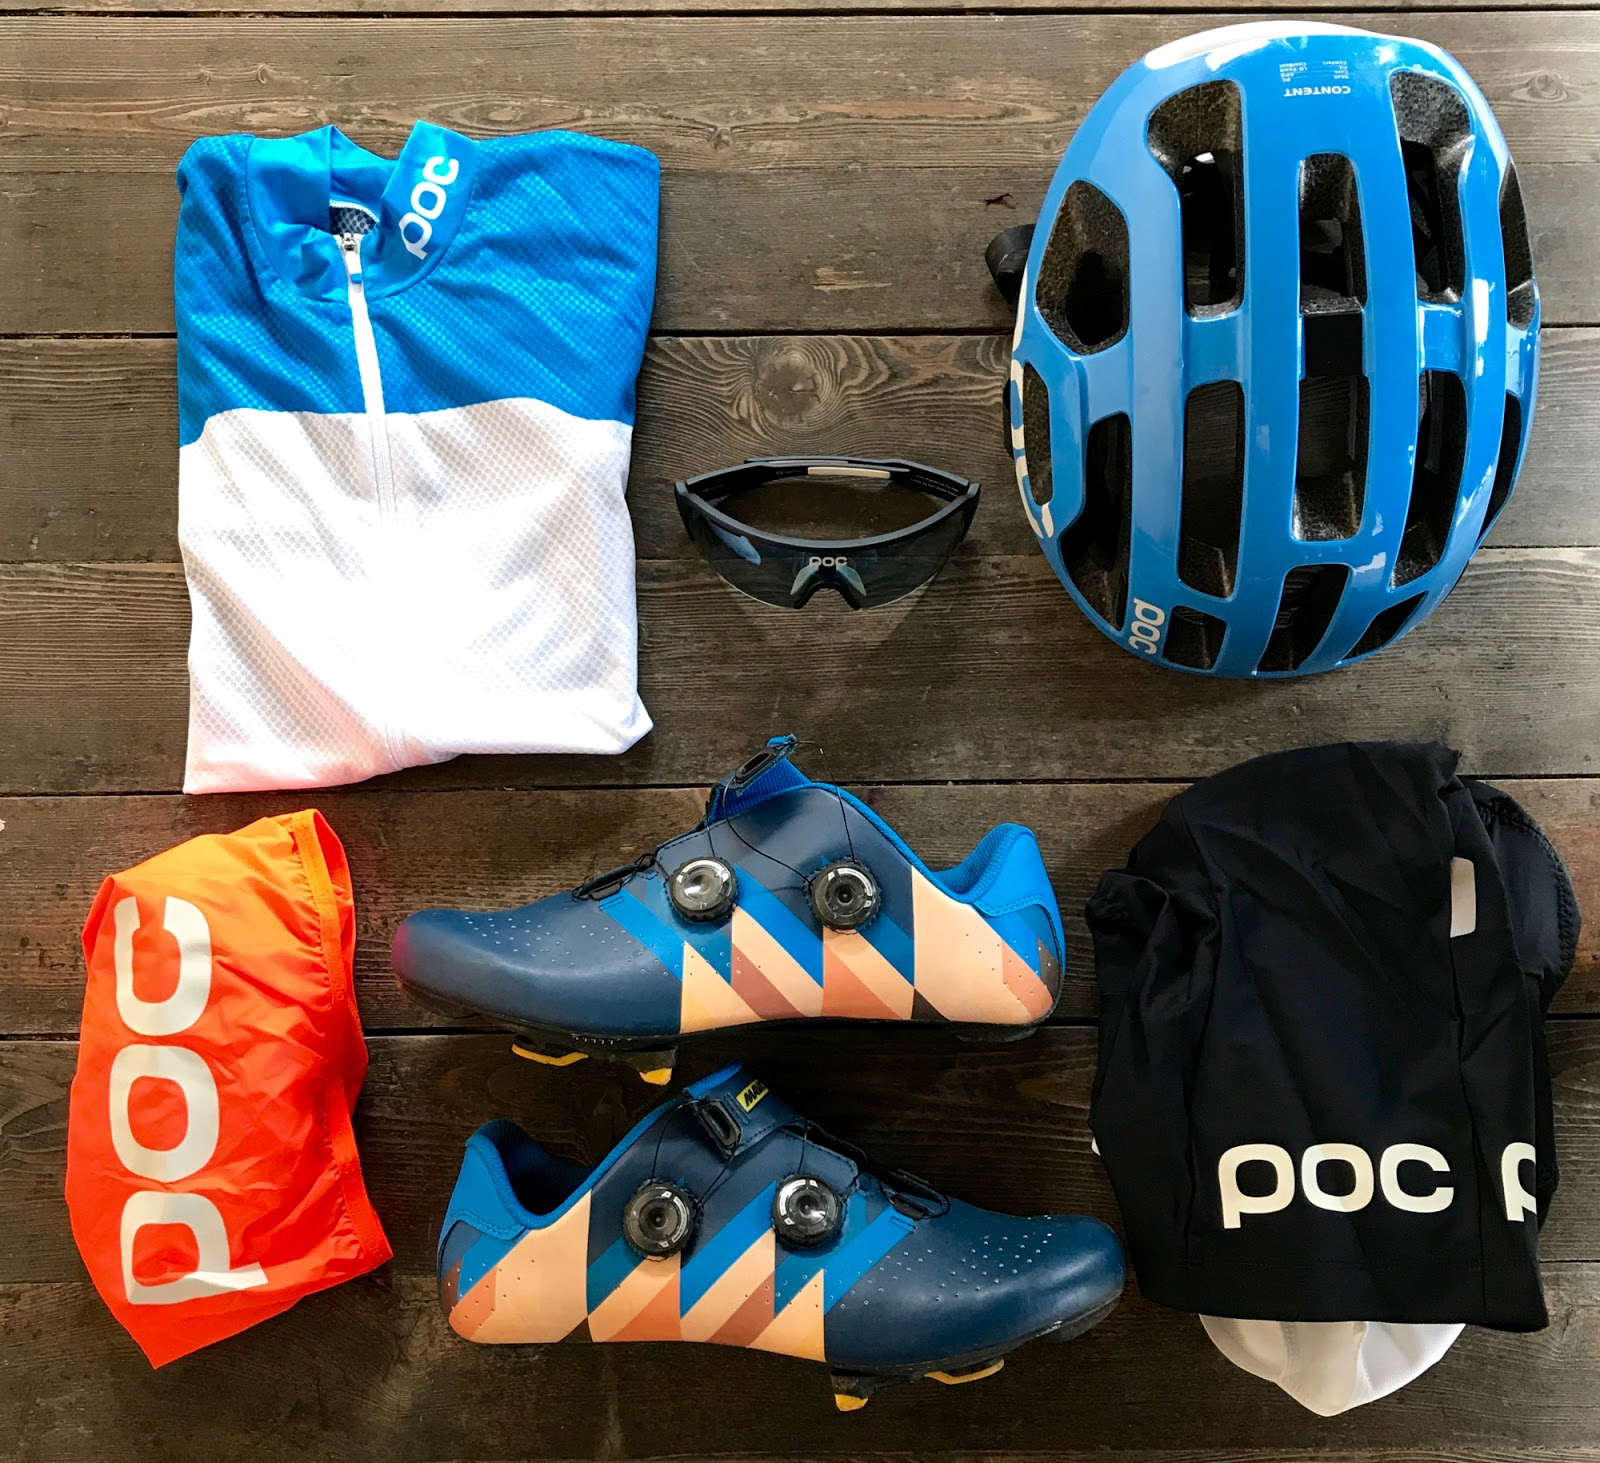 d8925a956 Review - POC Sports Apparel - Raceday Climber s Jersey